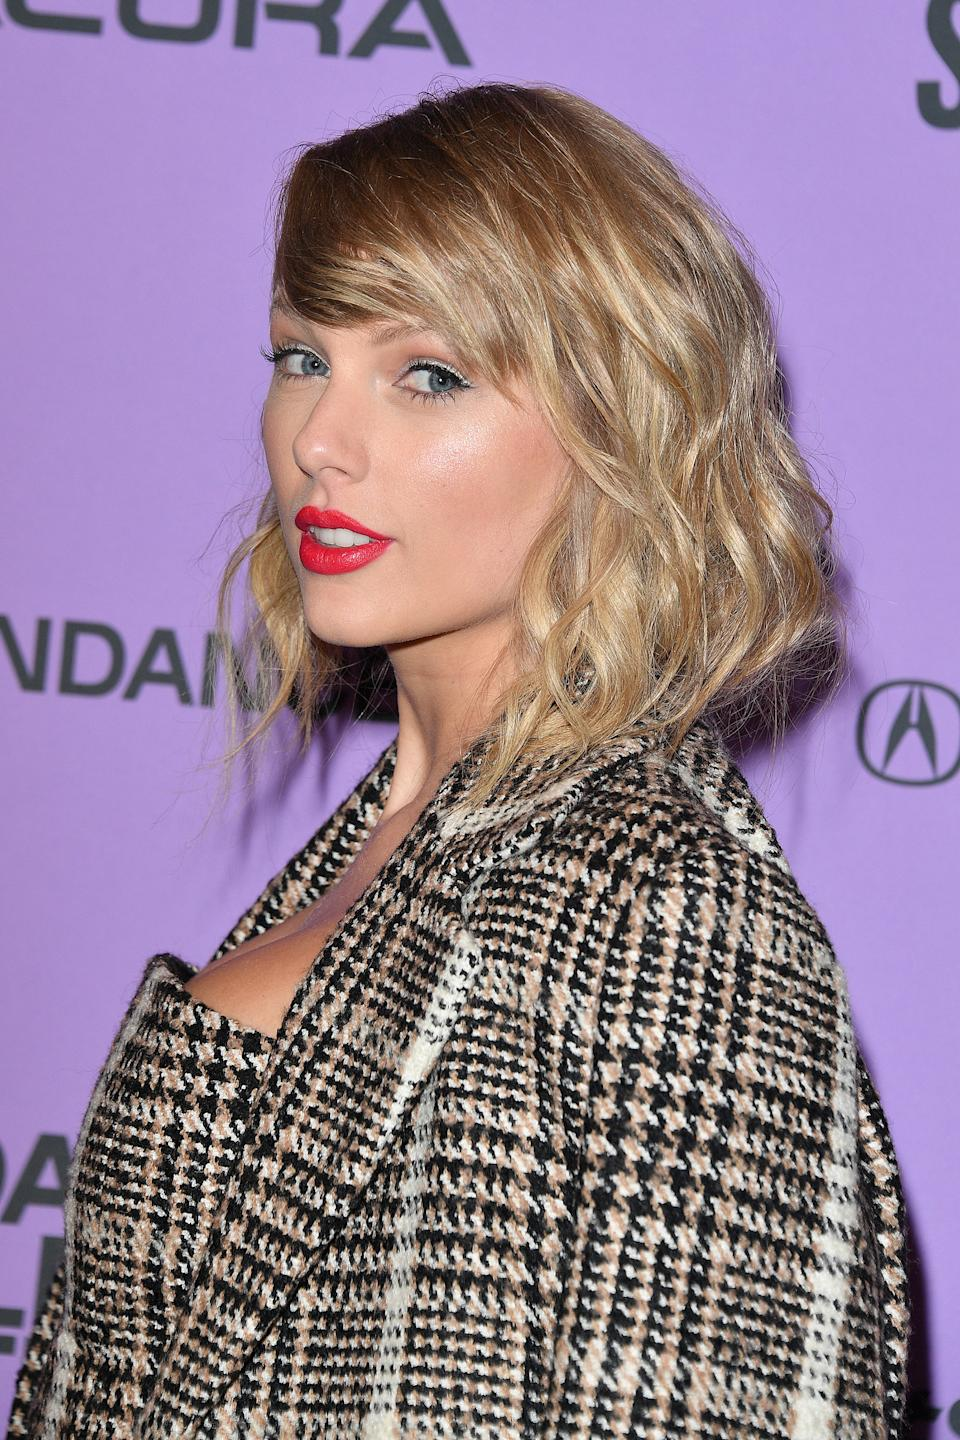 Taylor Swift is encouraging fans to avoid gathering in groups during the COVID-19 pandemic. (Photo by George Pimentel/Getty Images)